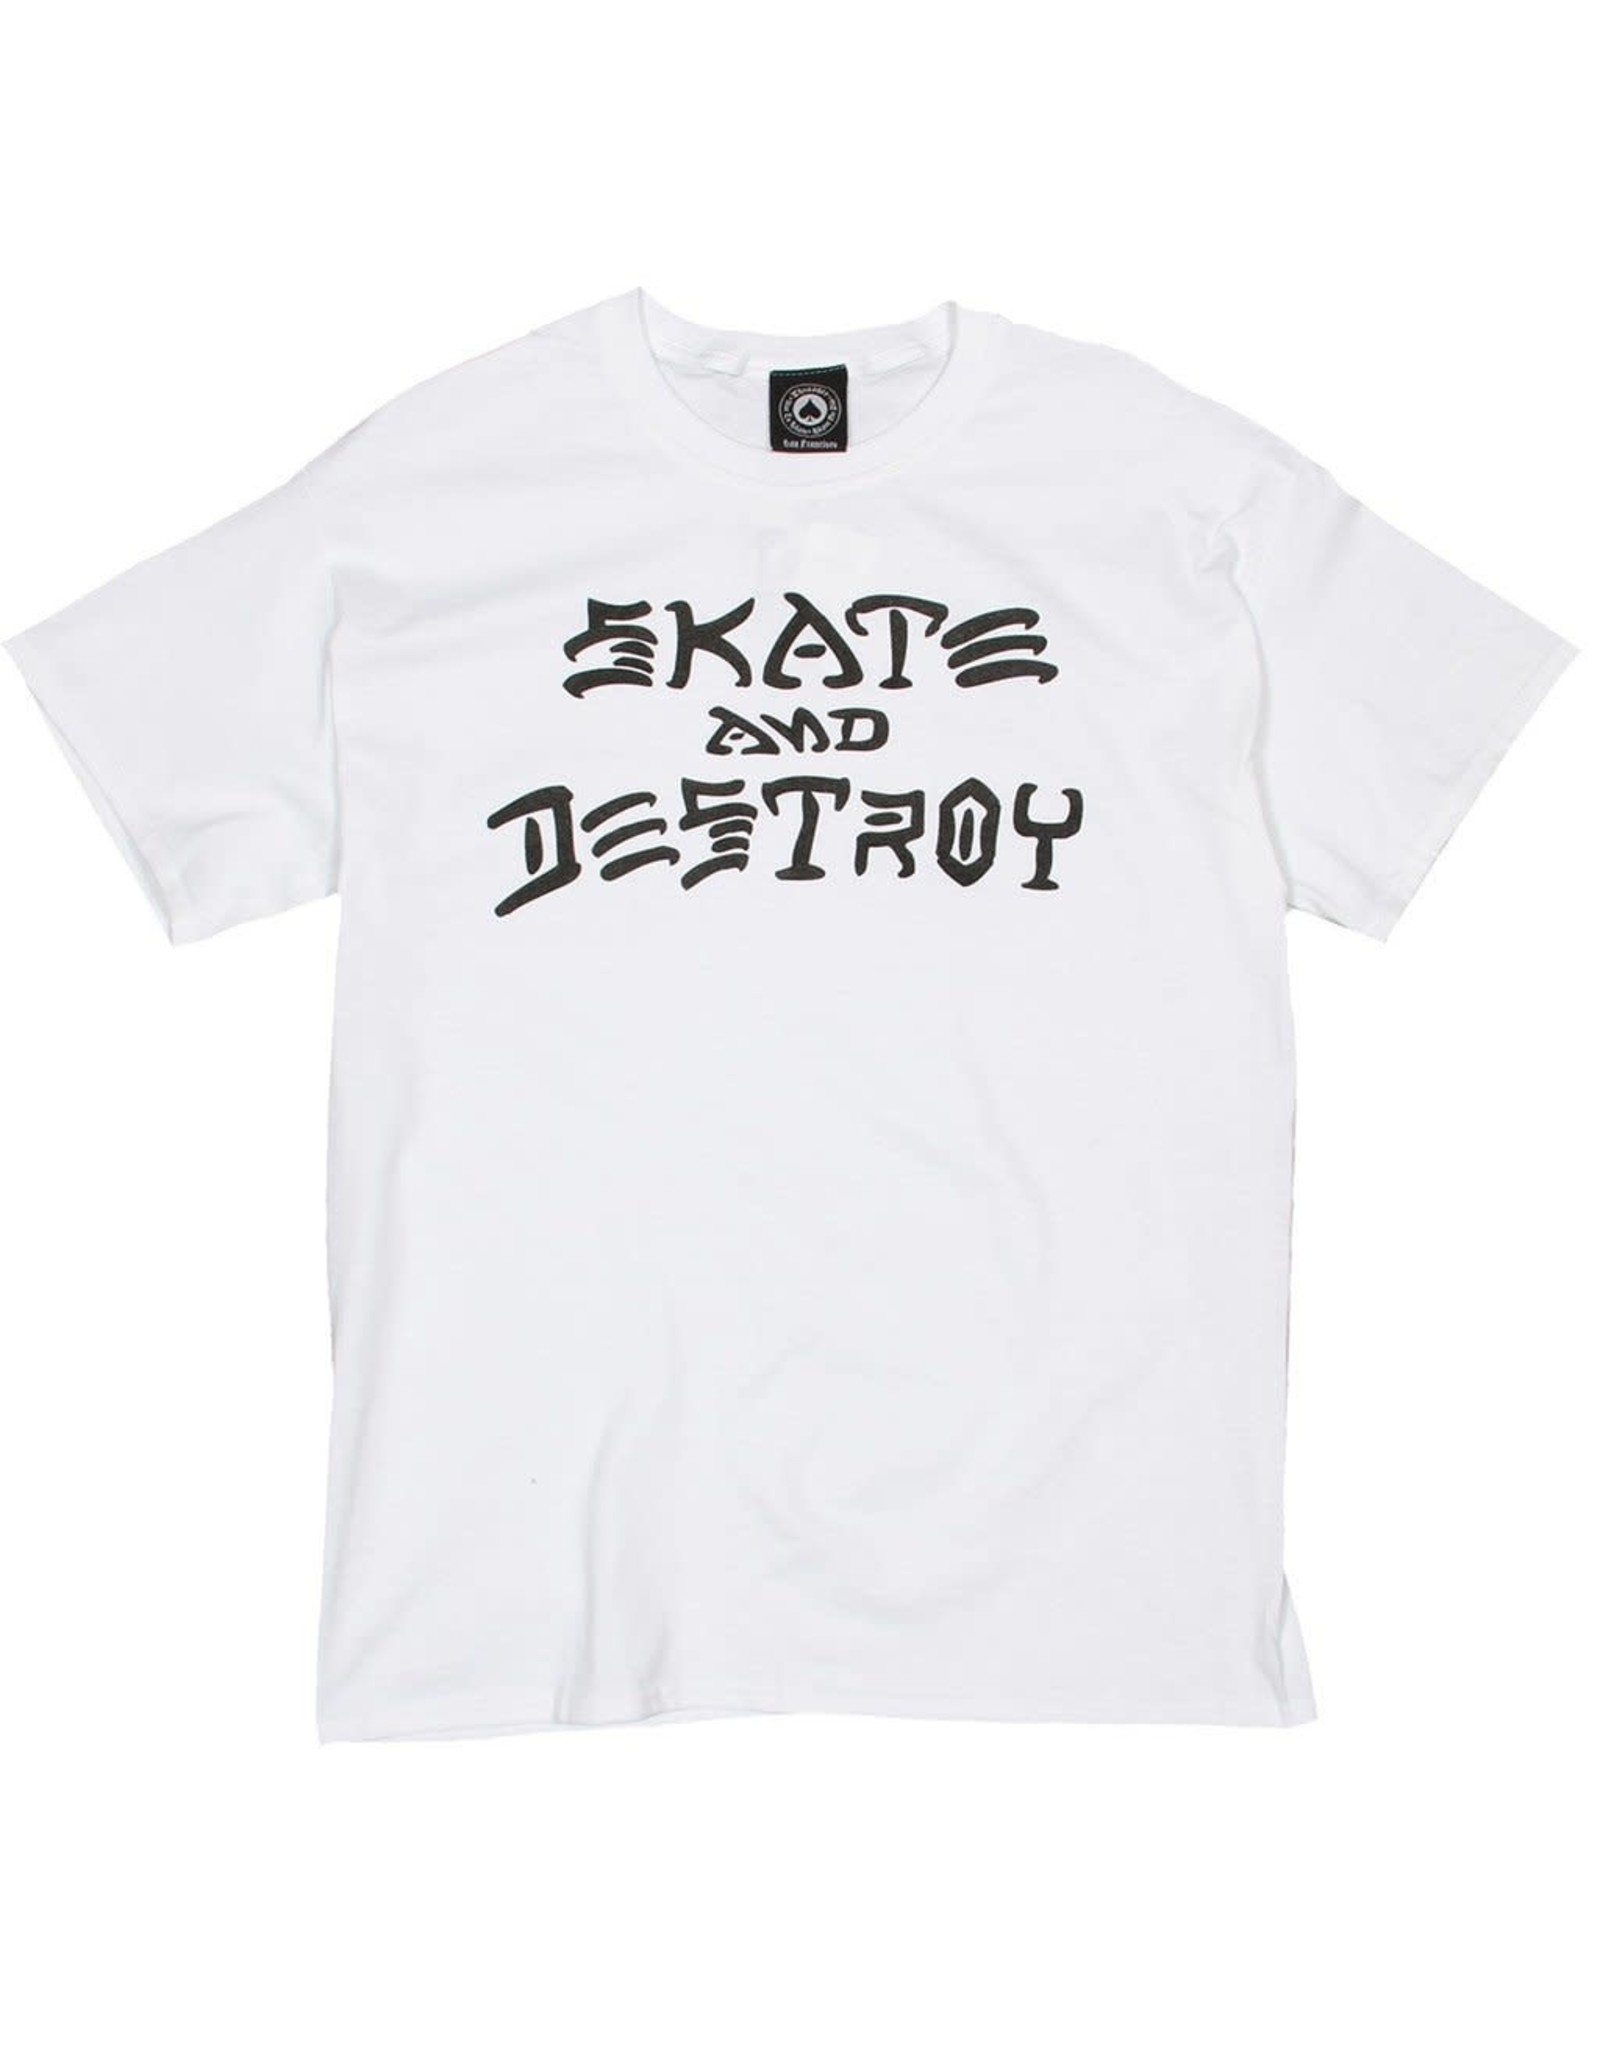 Thrasher Thrasher Tee Mens Sk8 And Destroy S/S (White)